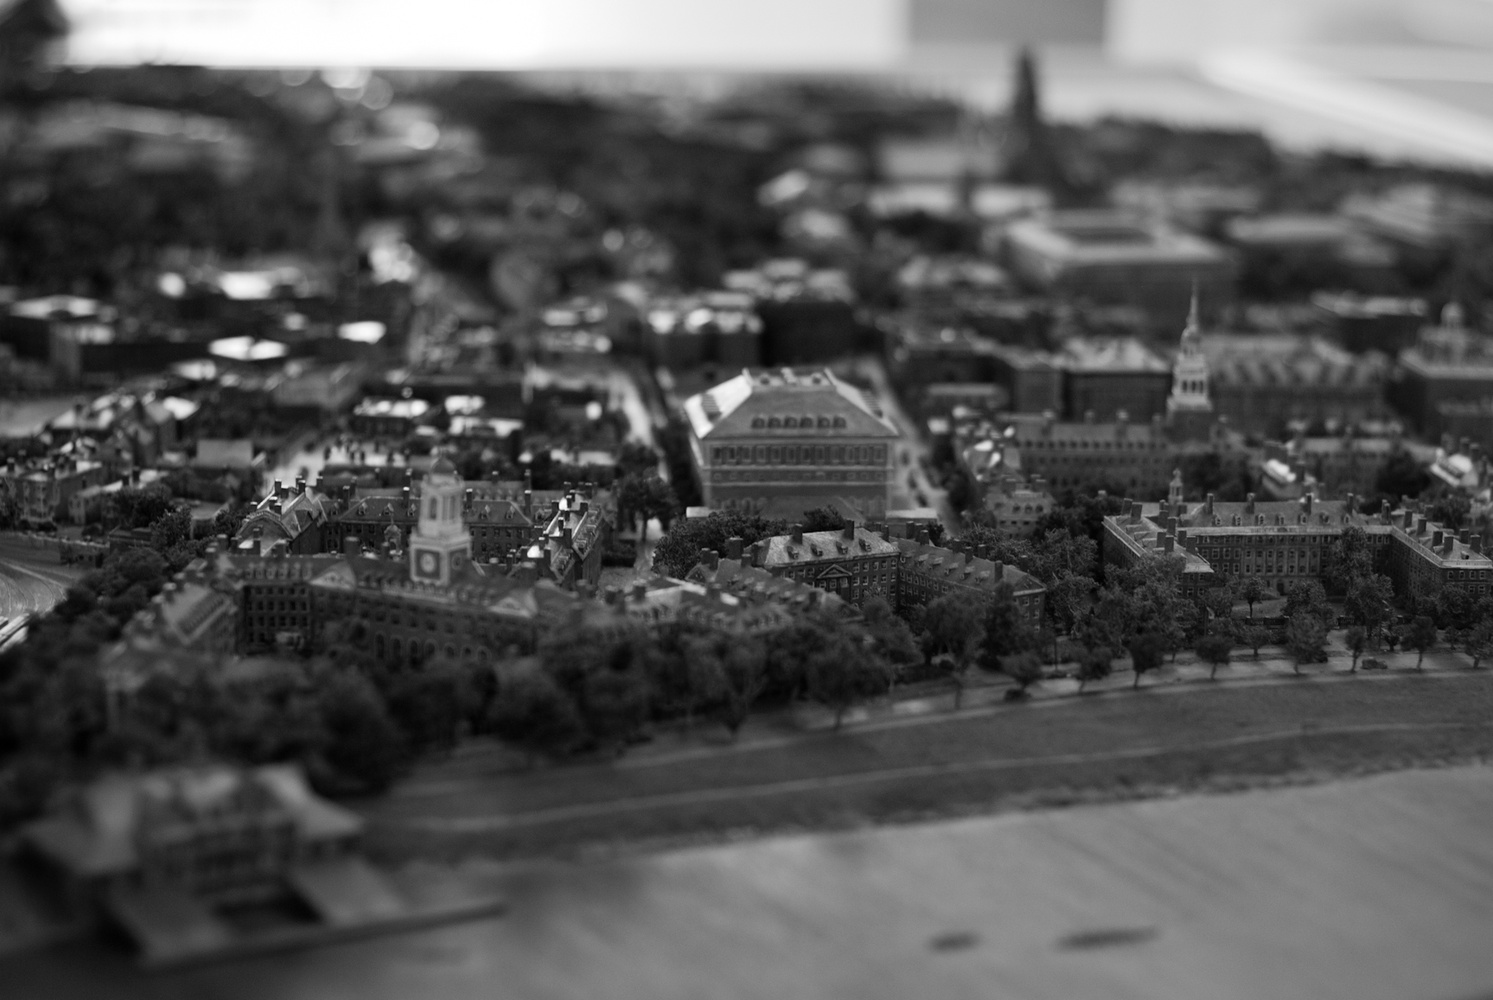 Another shot of the diorama of Harvard University campus in 1936 in the HMC lobby.